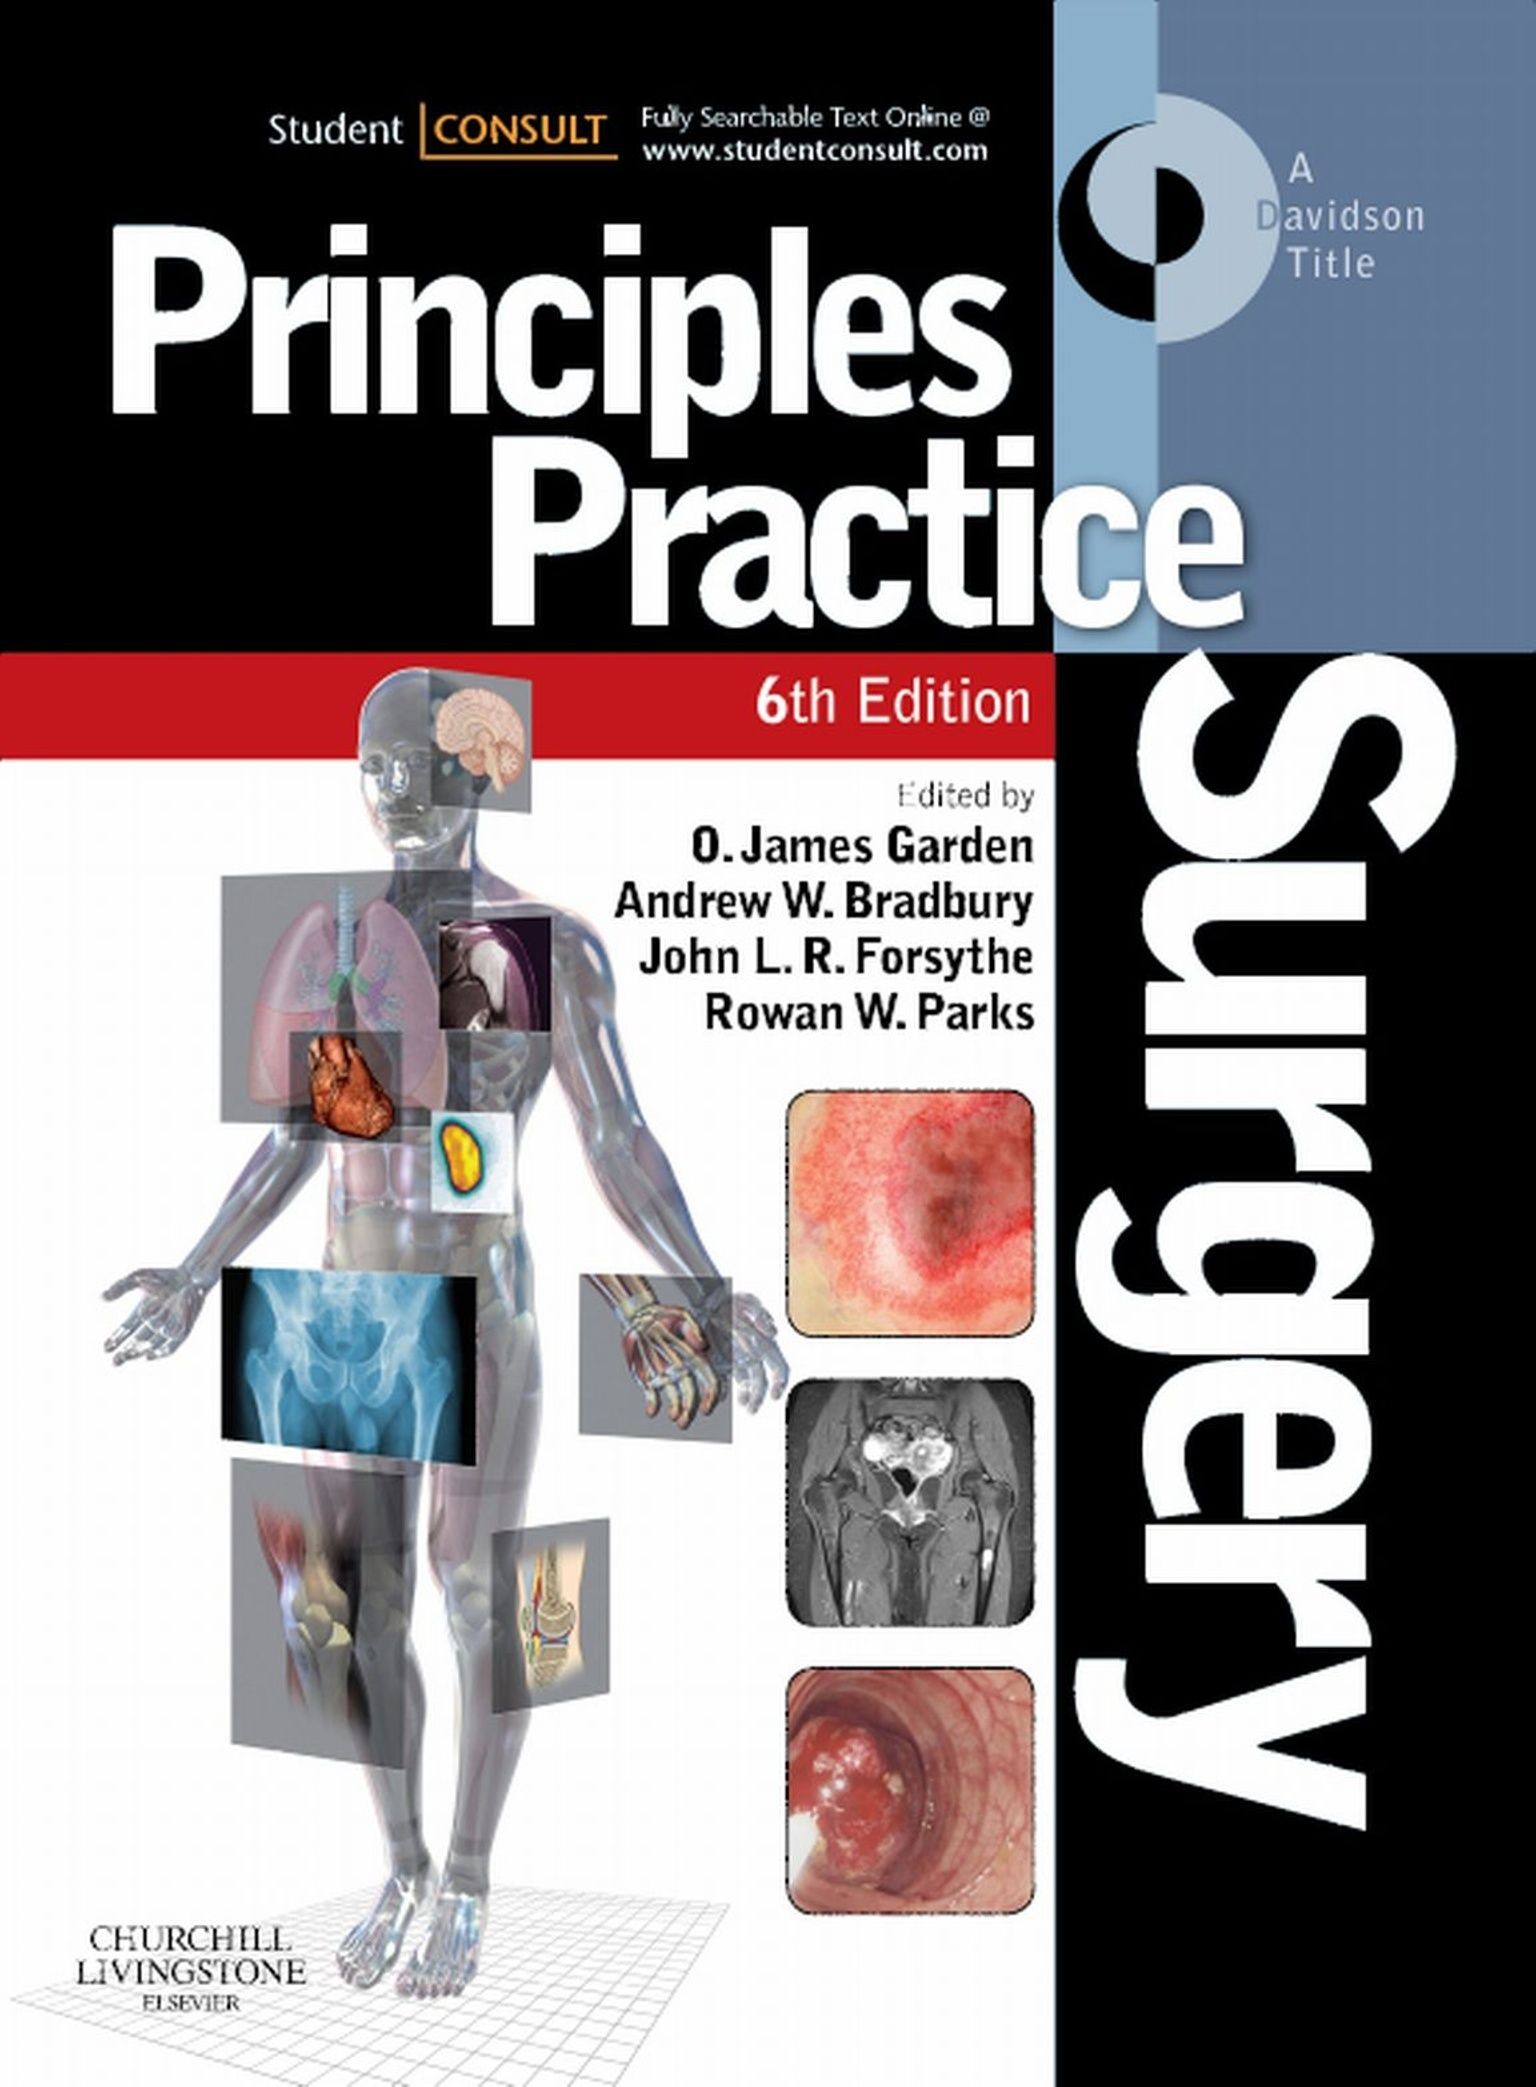 PRINCIPLES AND PRACTICE OF SURGERY, 6TH EDITION.pdf free download ...